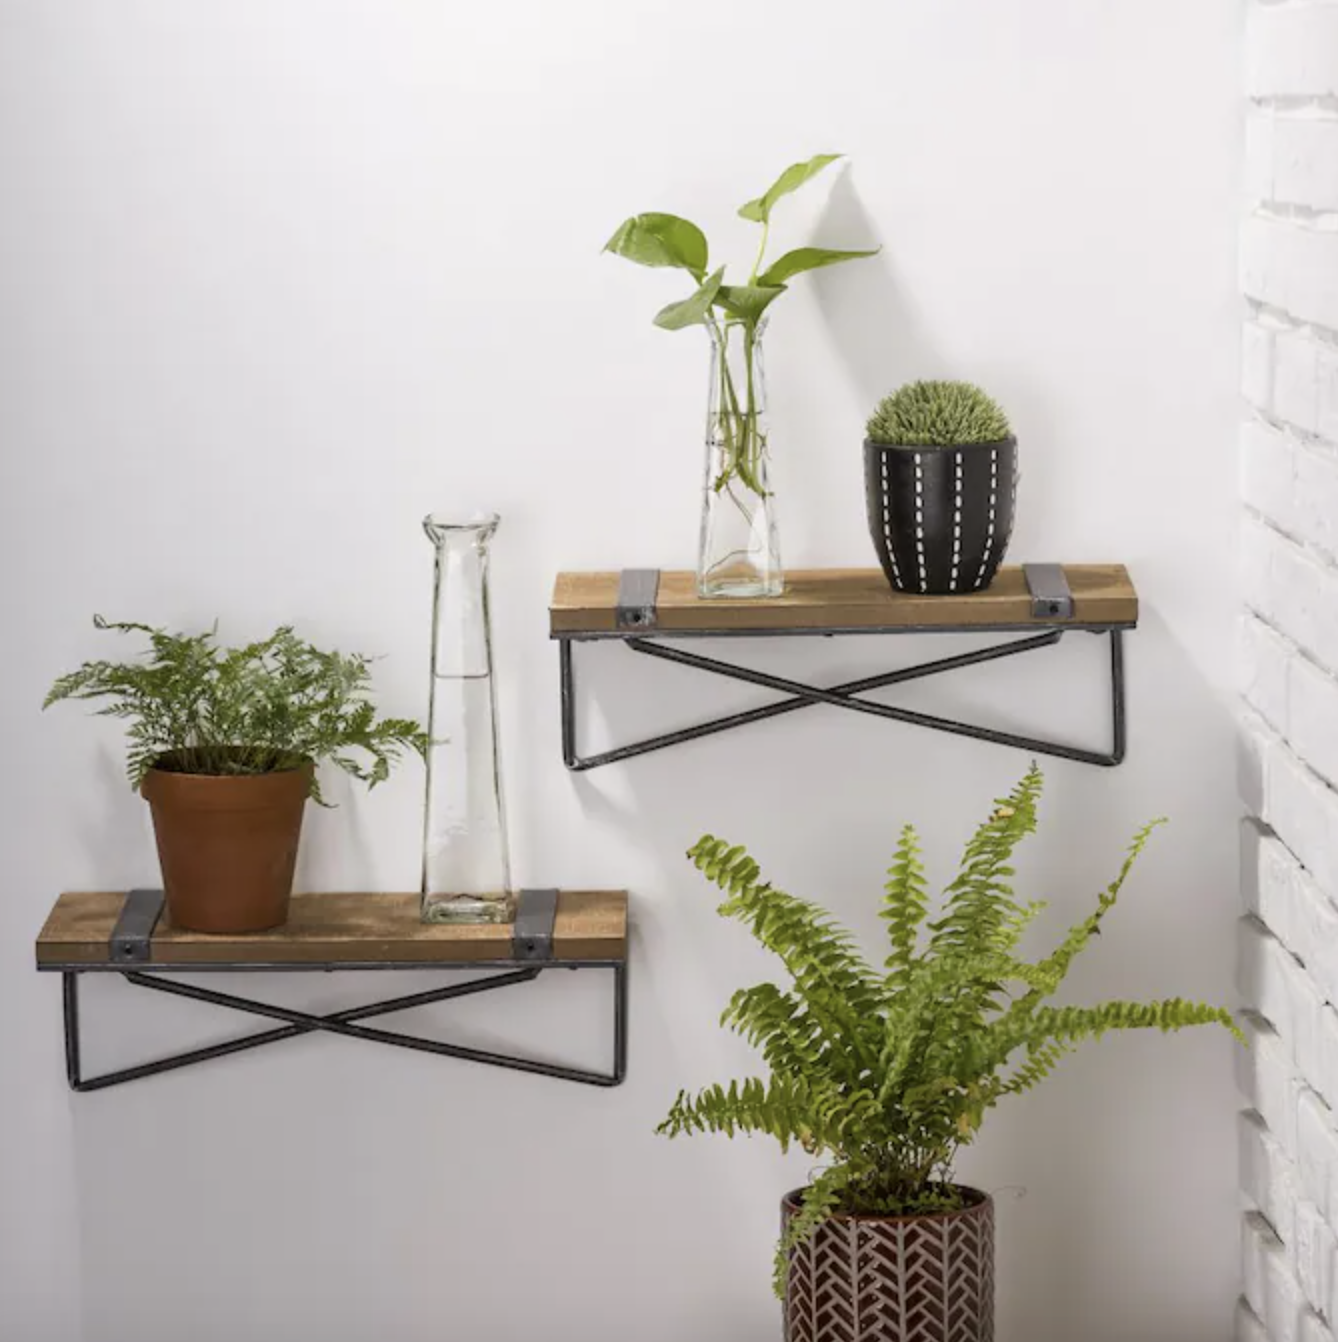 Two wood shelf boards hanging on wall